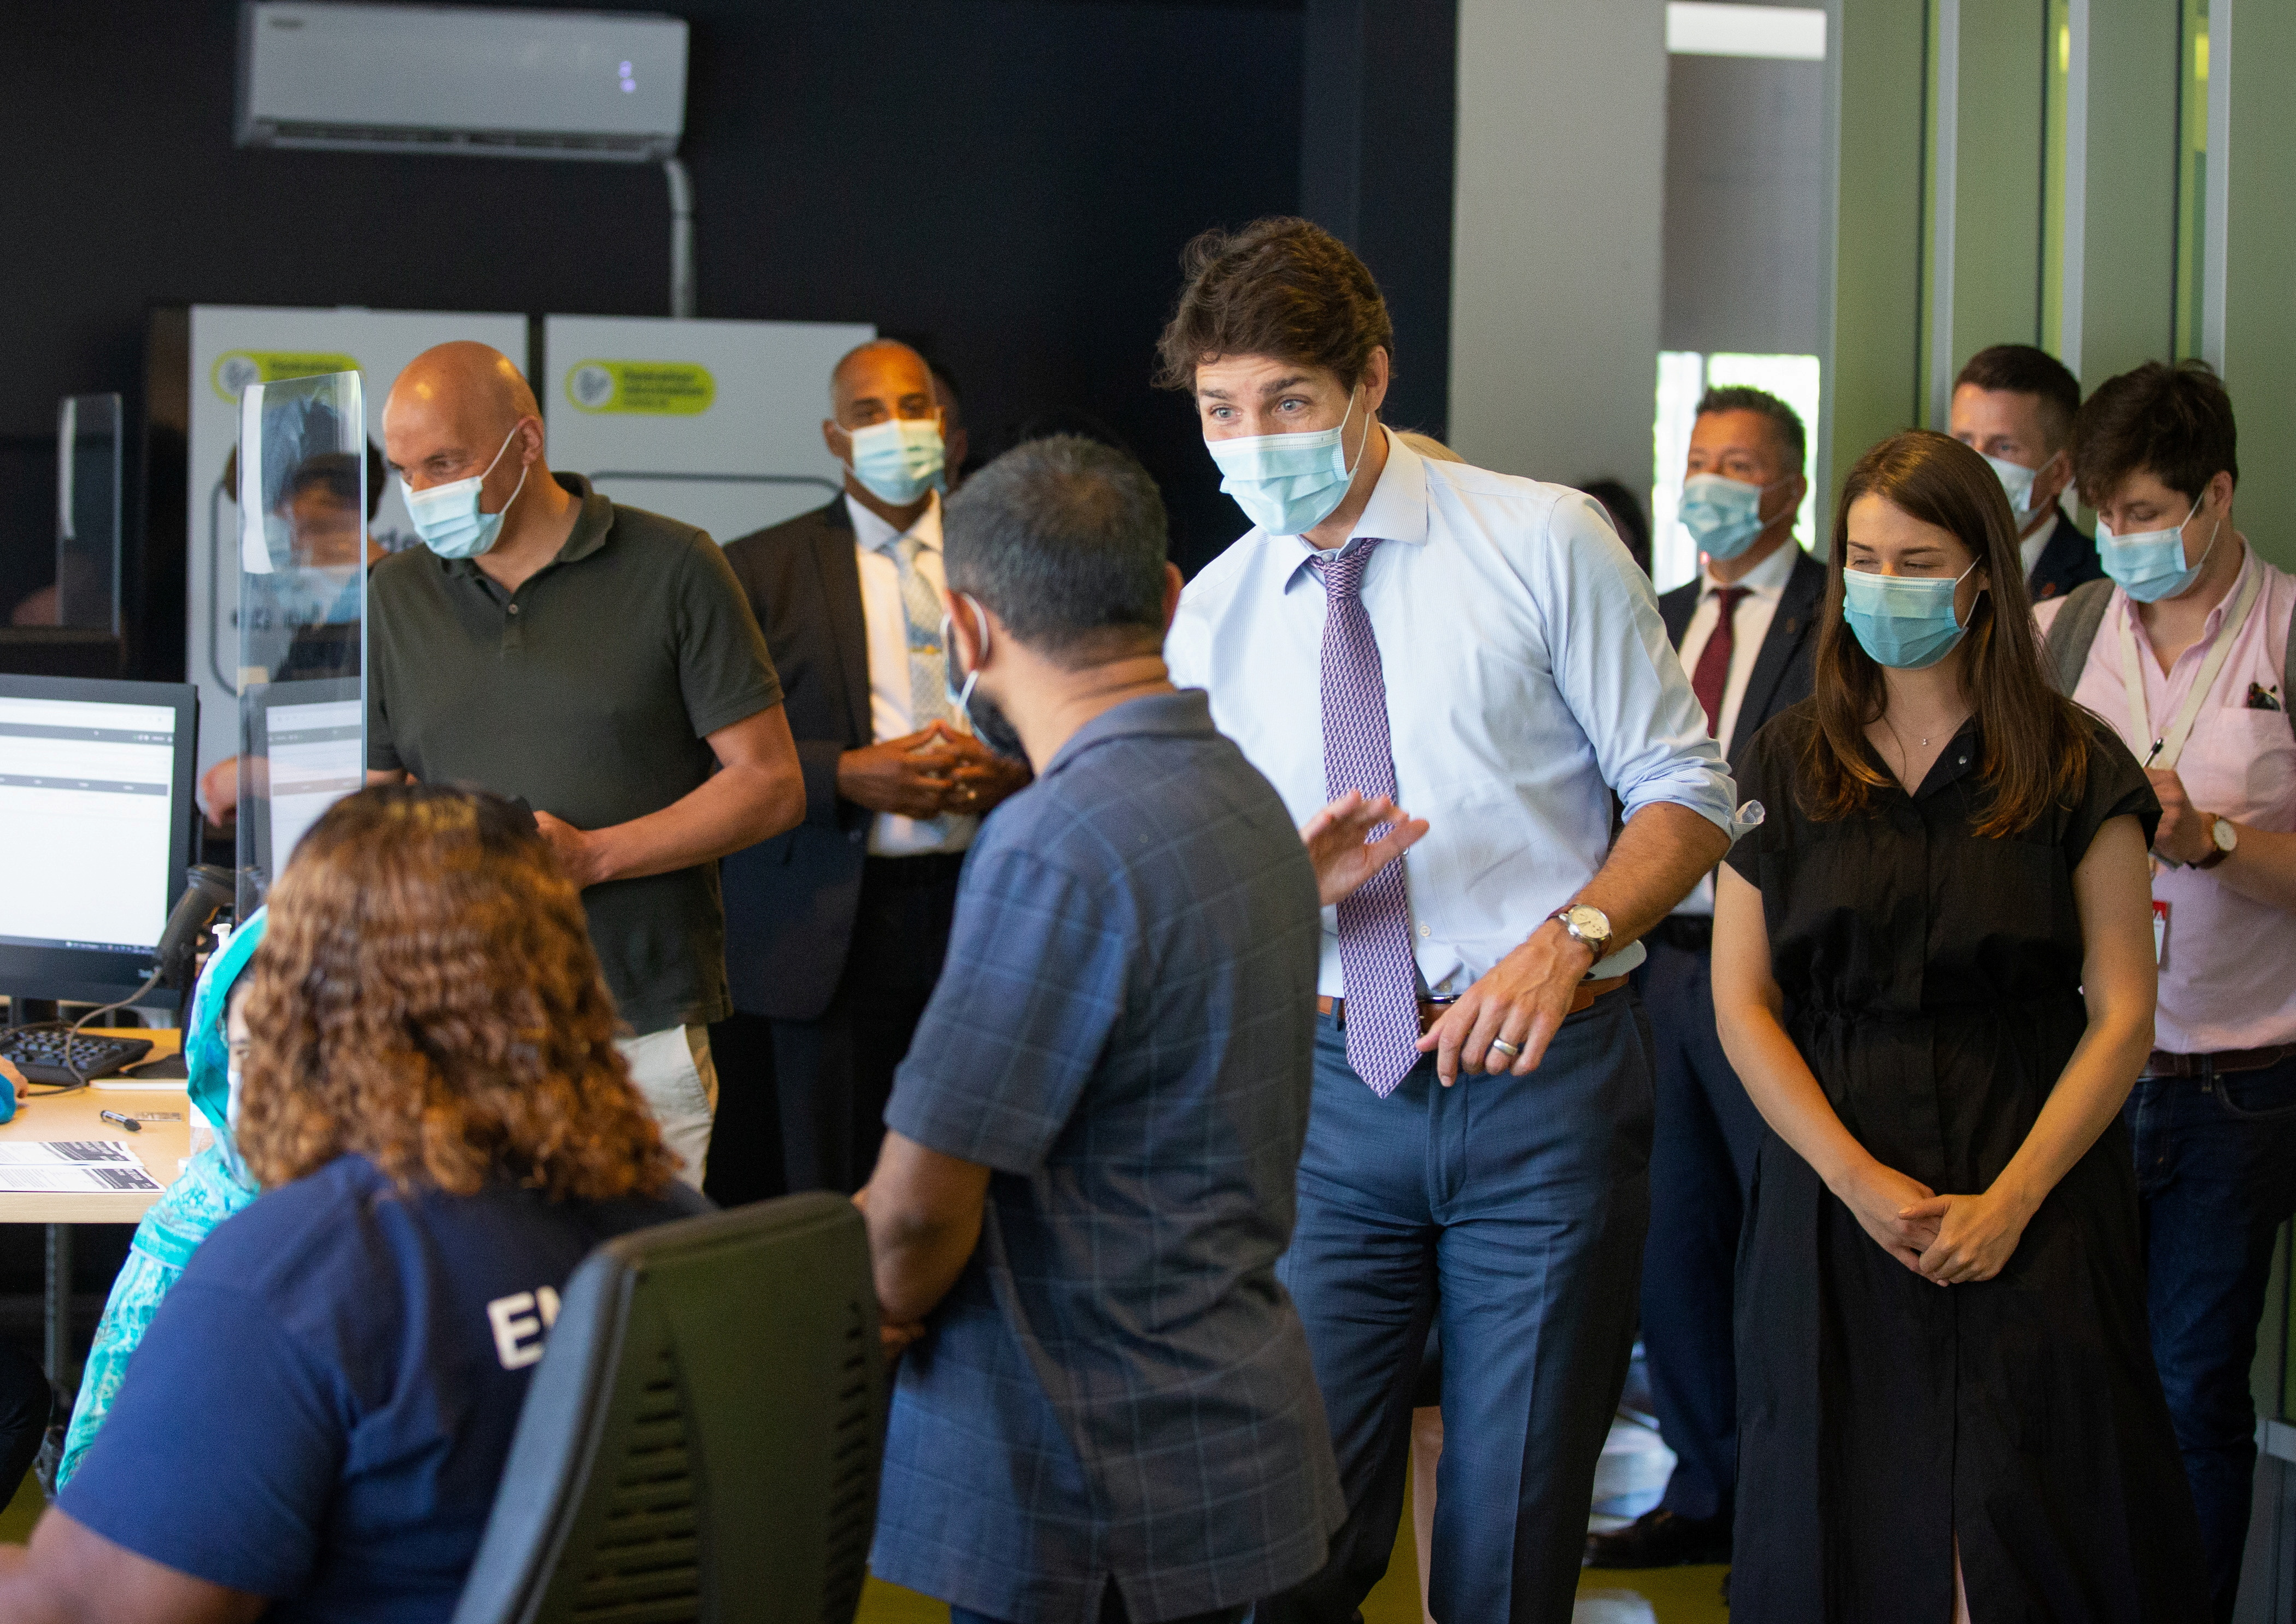 Canada's Prime Minister Justin Trudeau greets people as he visits a vaccination site, amid the coronavirus disease (COVID-19) pandemic, in Montreal, Quebec, Canada July 15, 2021. REUTERS/Christinne Muschi